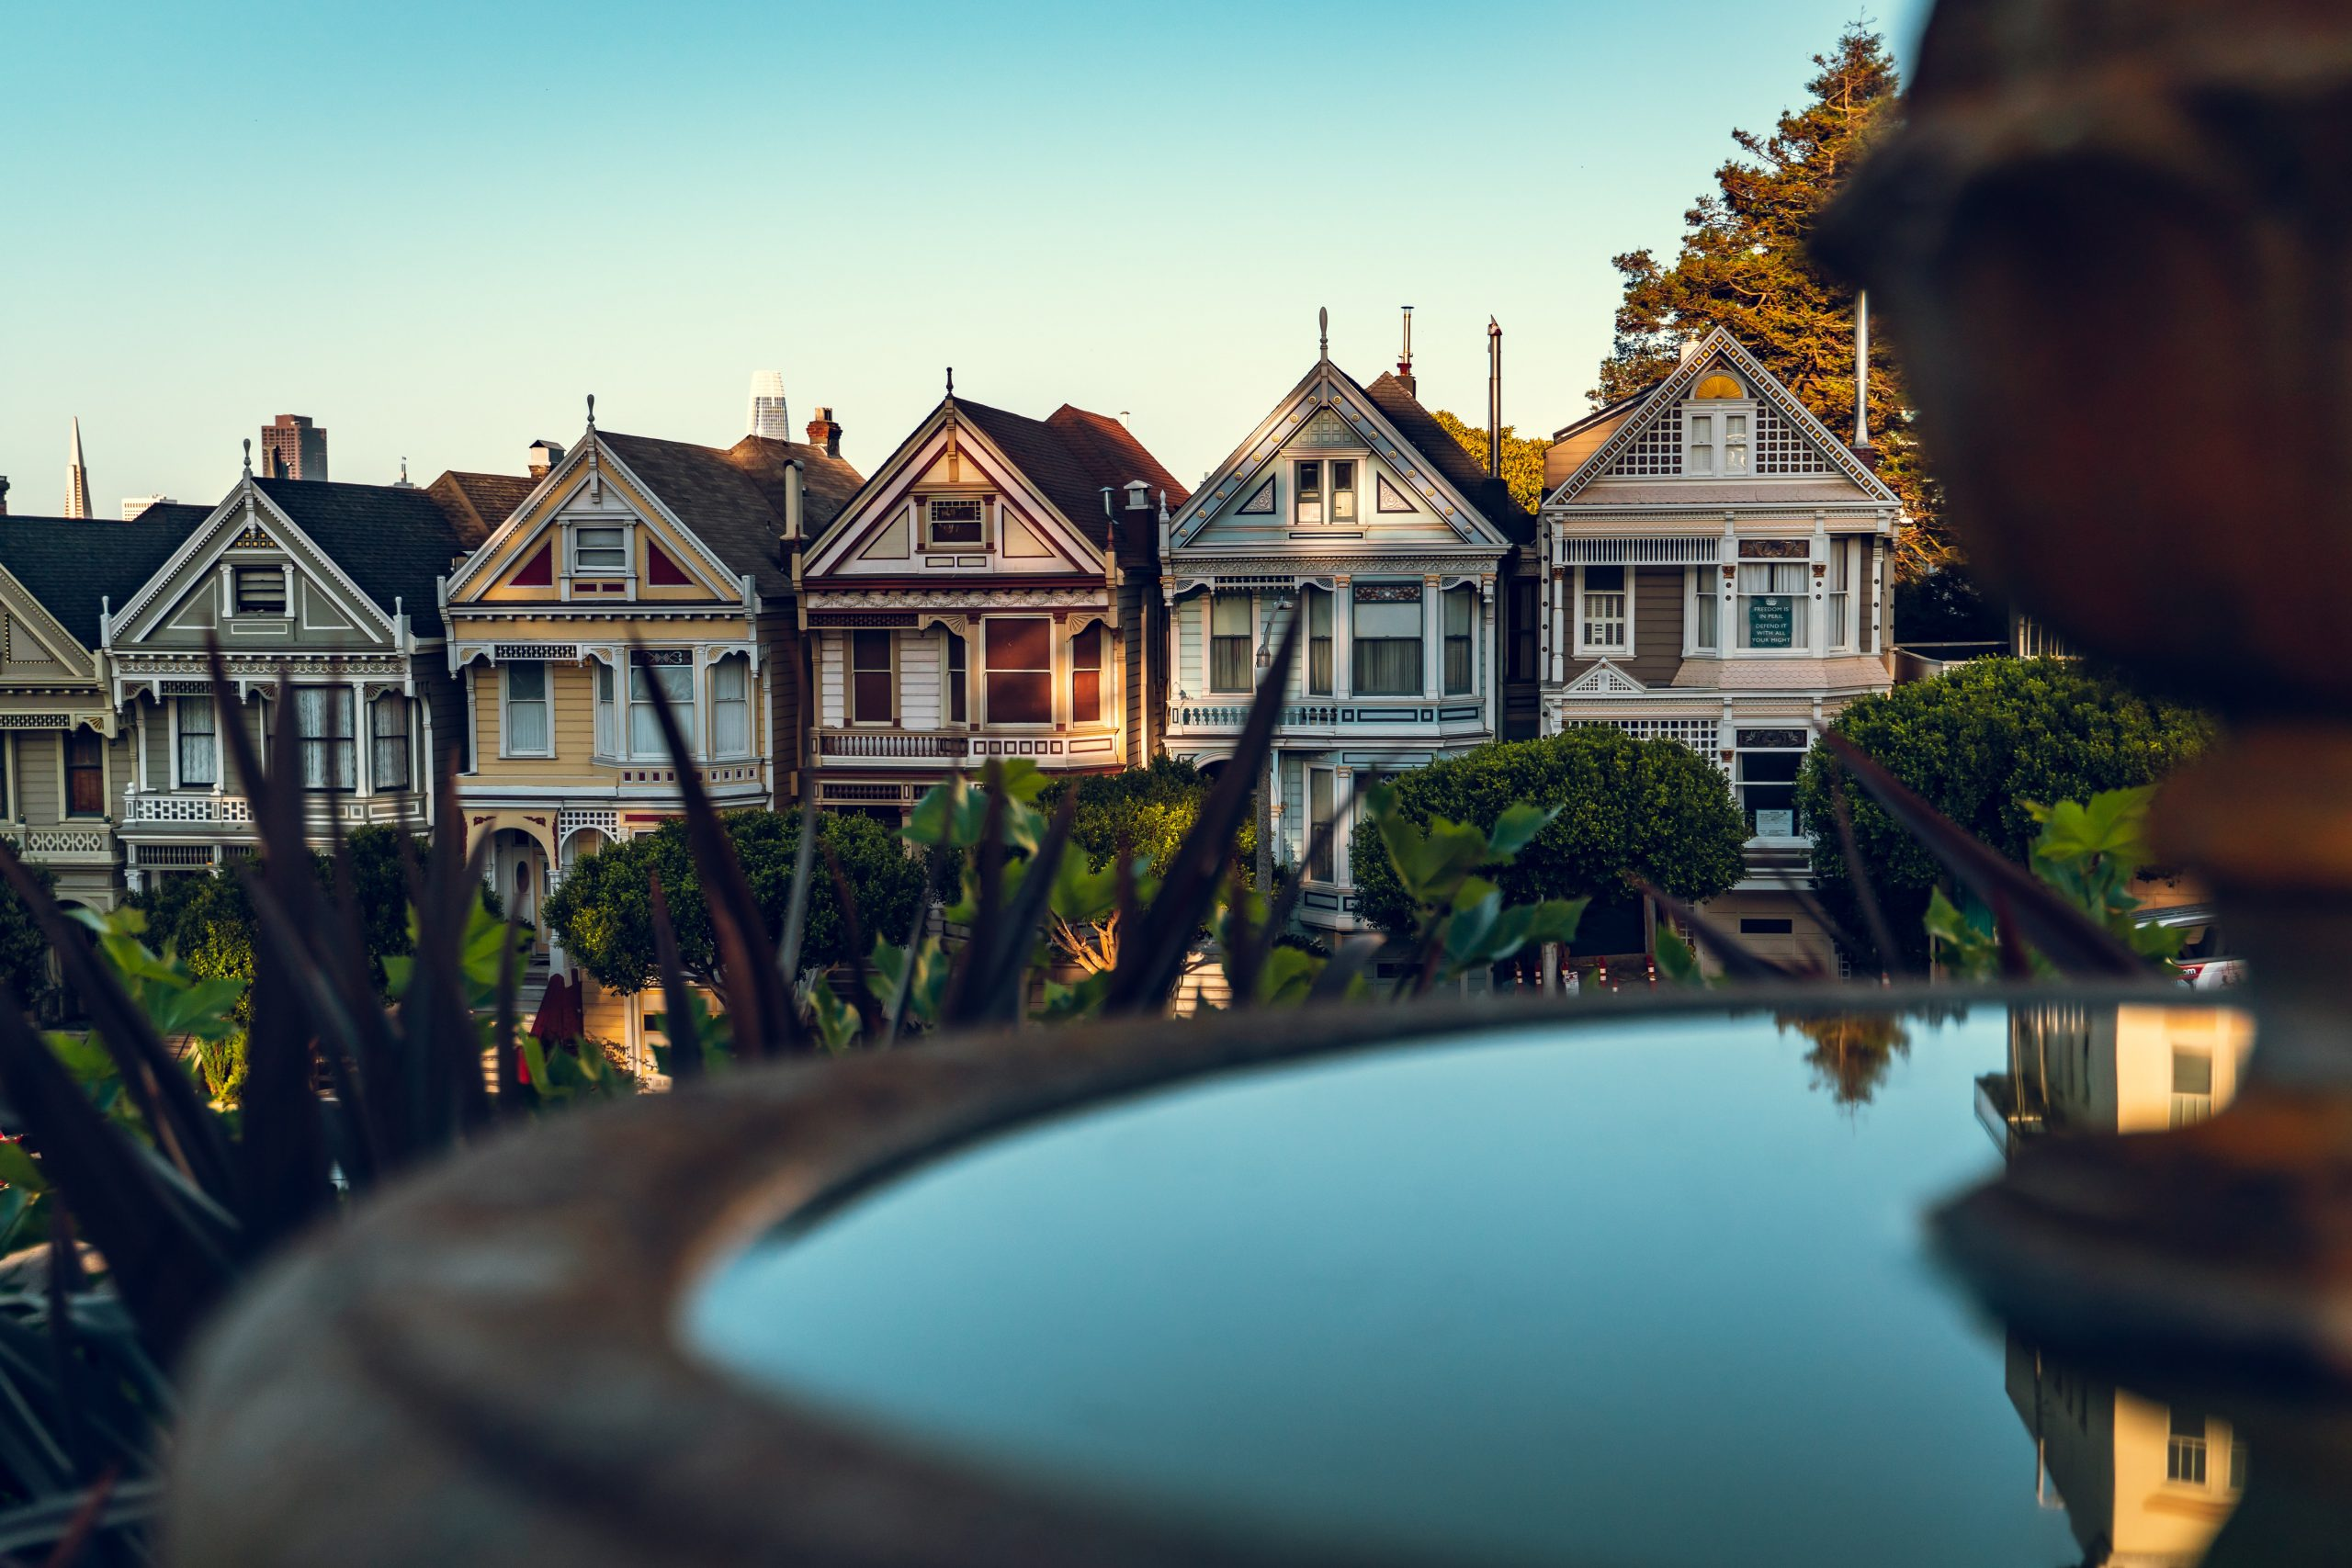 Desperate Housewives - San Francisco's terraced houses